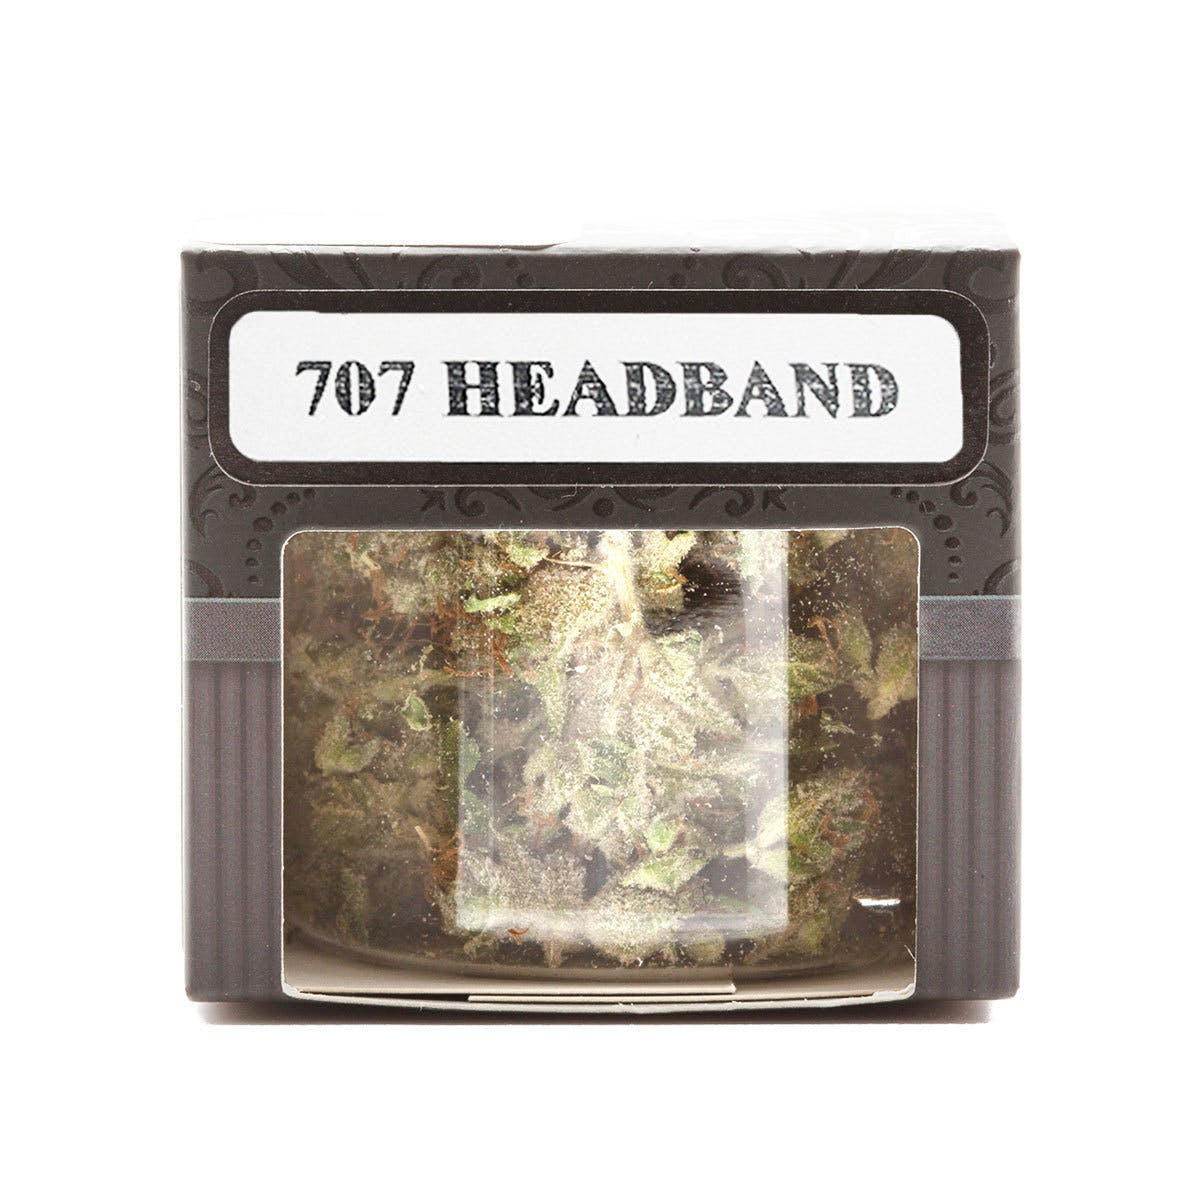 marijuana-dispensaries-legal-marijuana-superstore-in-port-orchard-707-headband